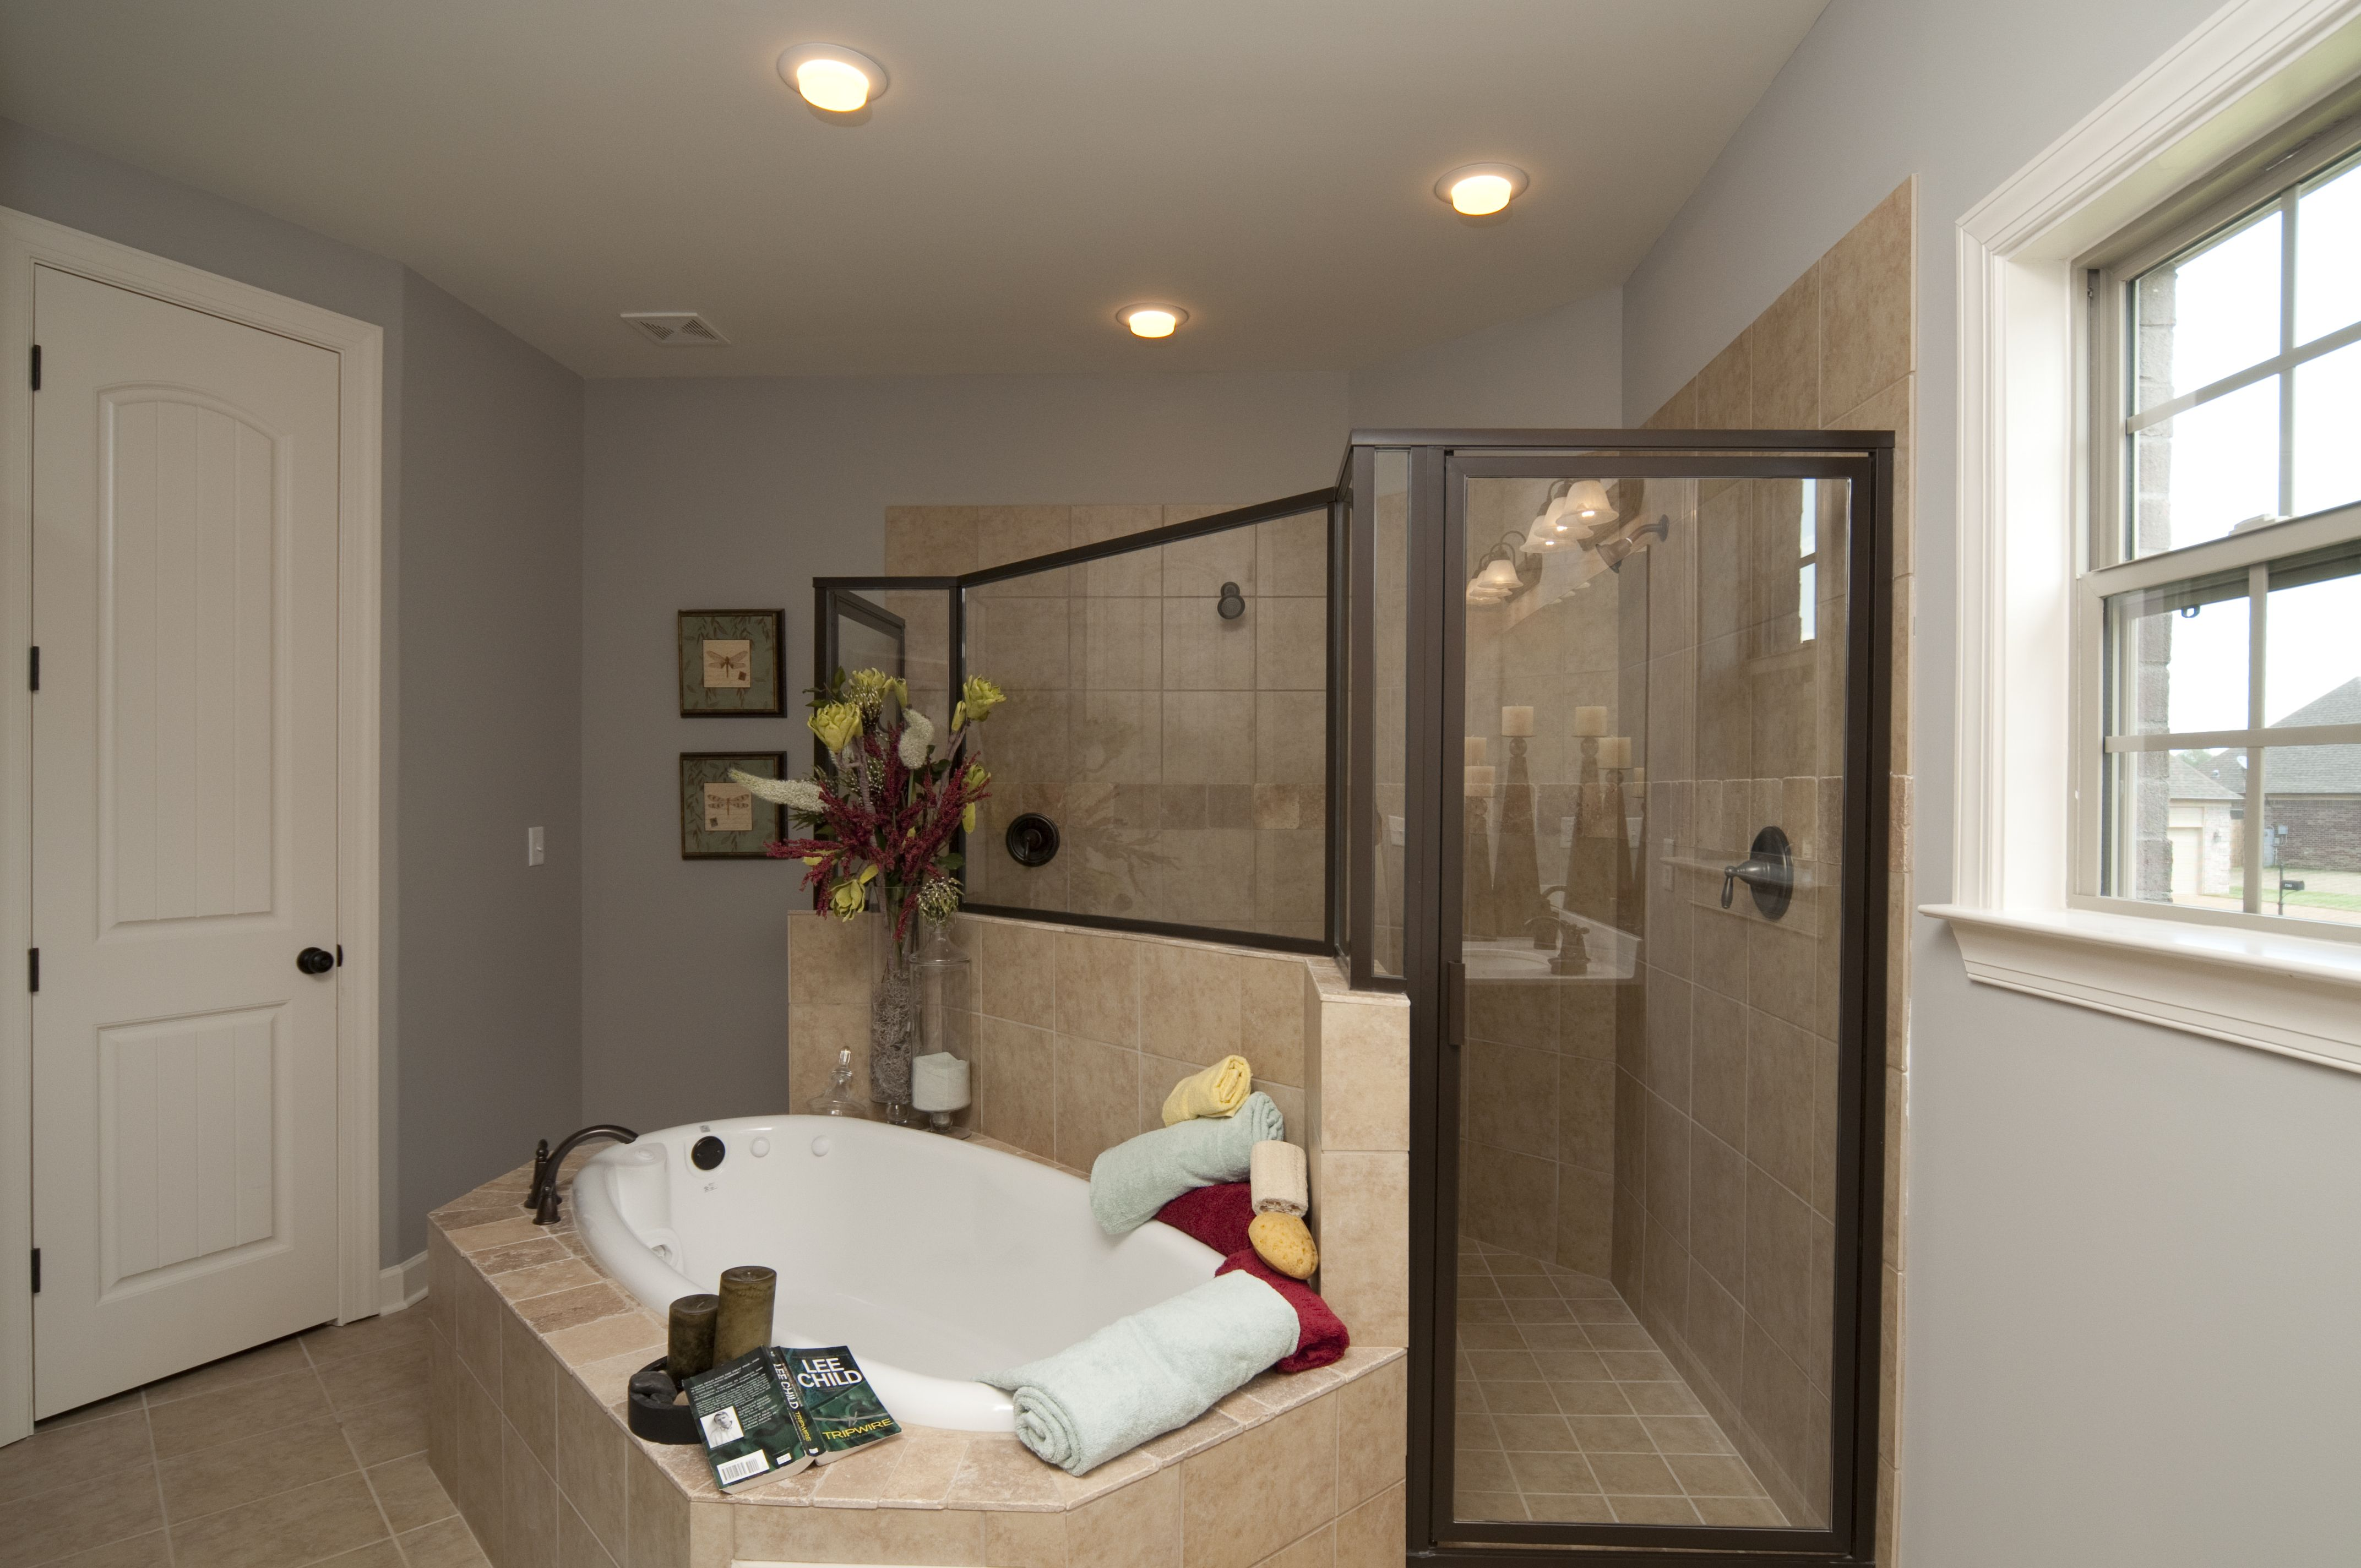 Master bedroom with jacuzzi tub  Walk thru Double Shower This is what we are getting in the Master